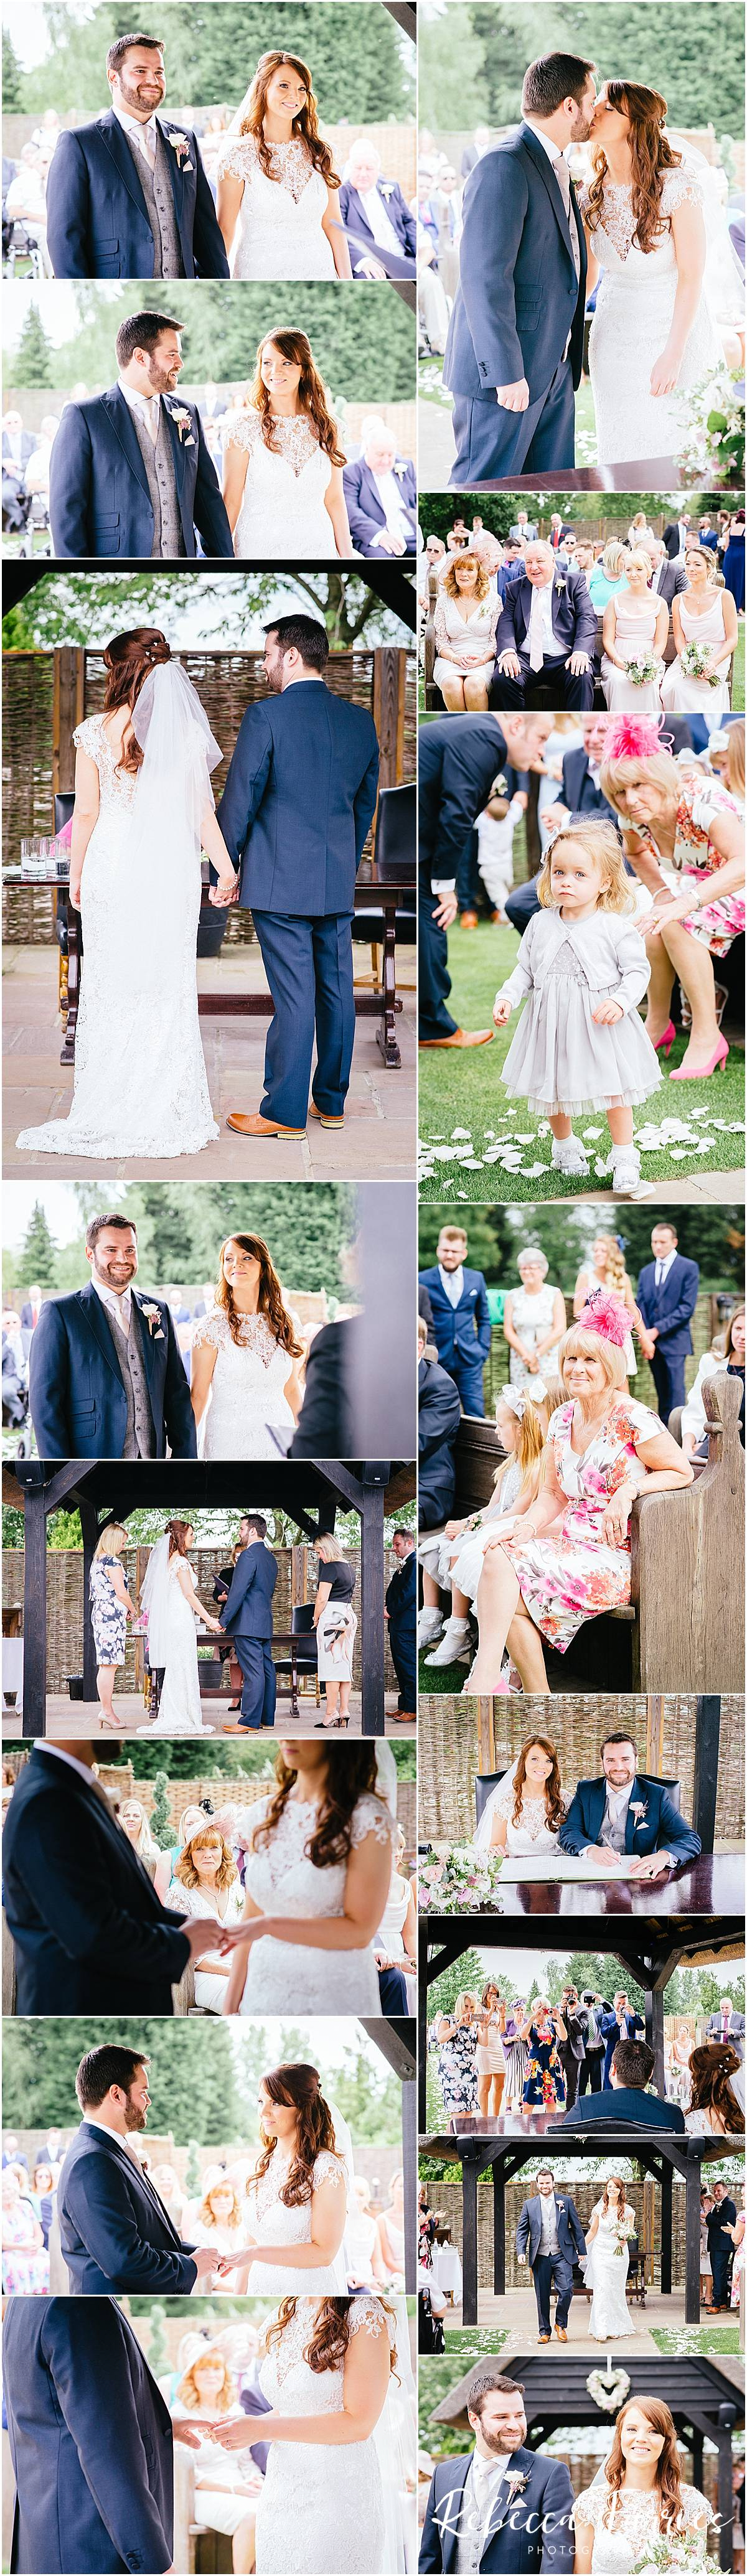 weddingphotographychannels_0075